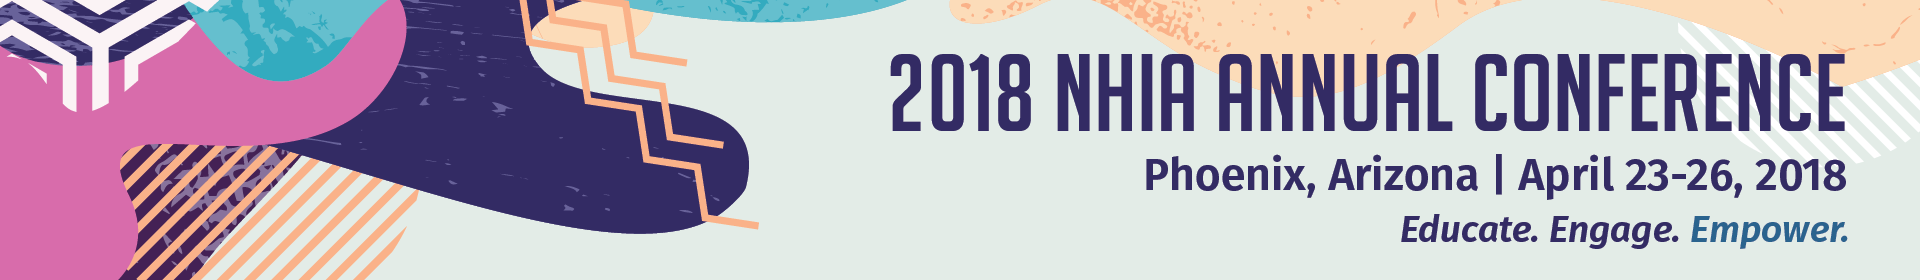 2018 NHIA Annual Conference